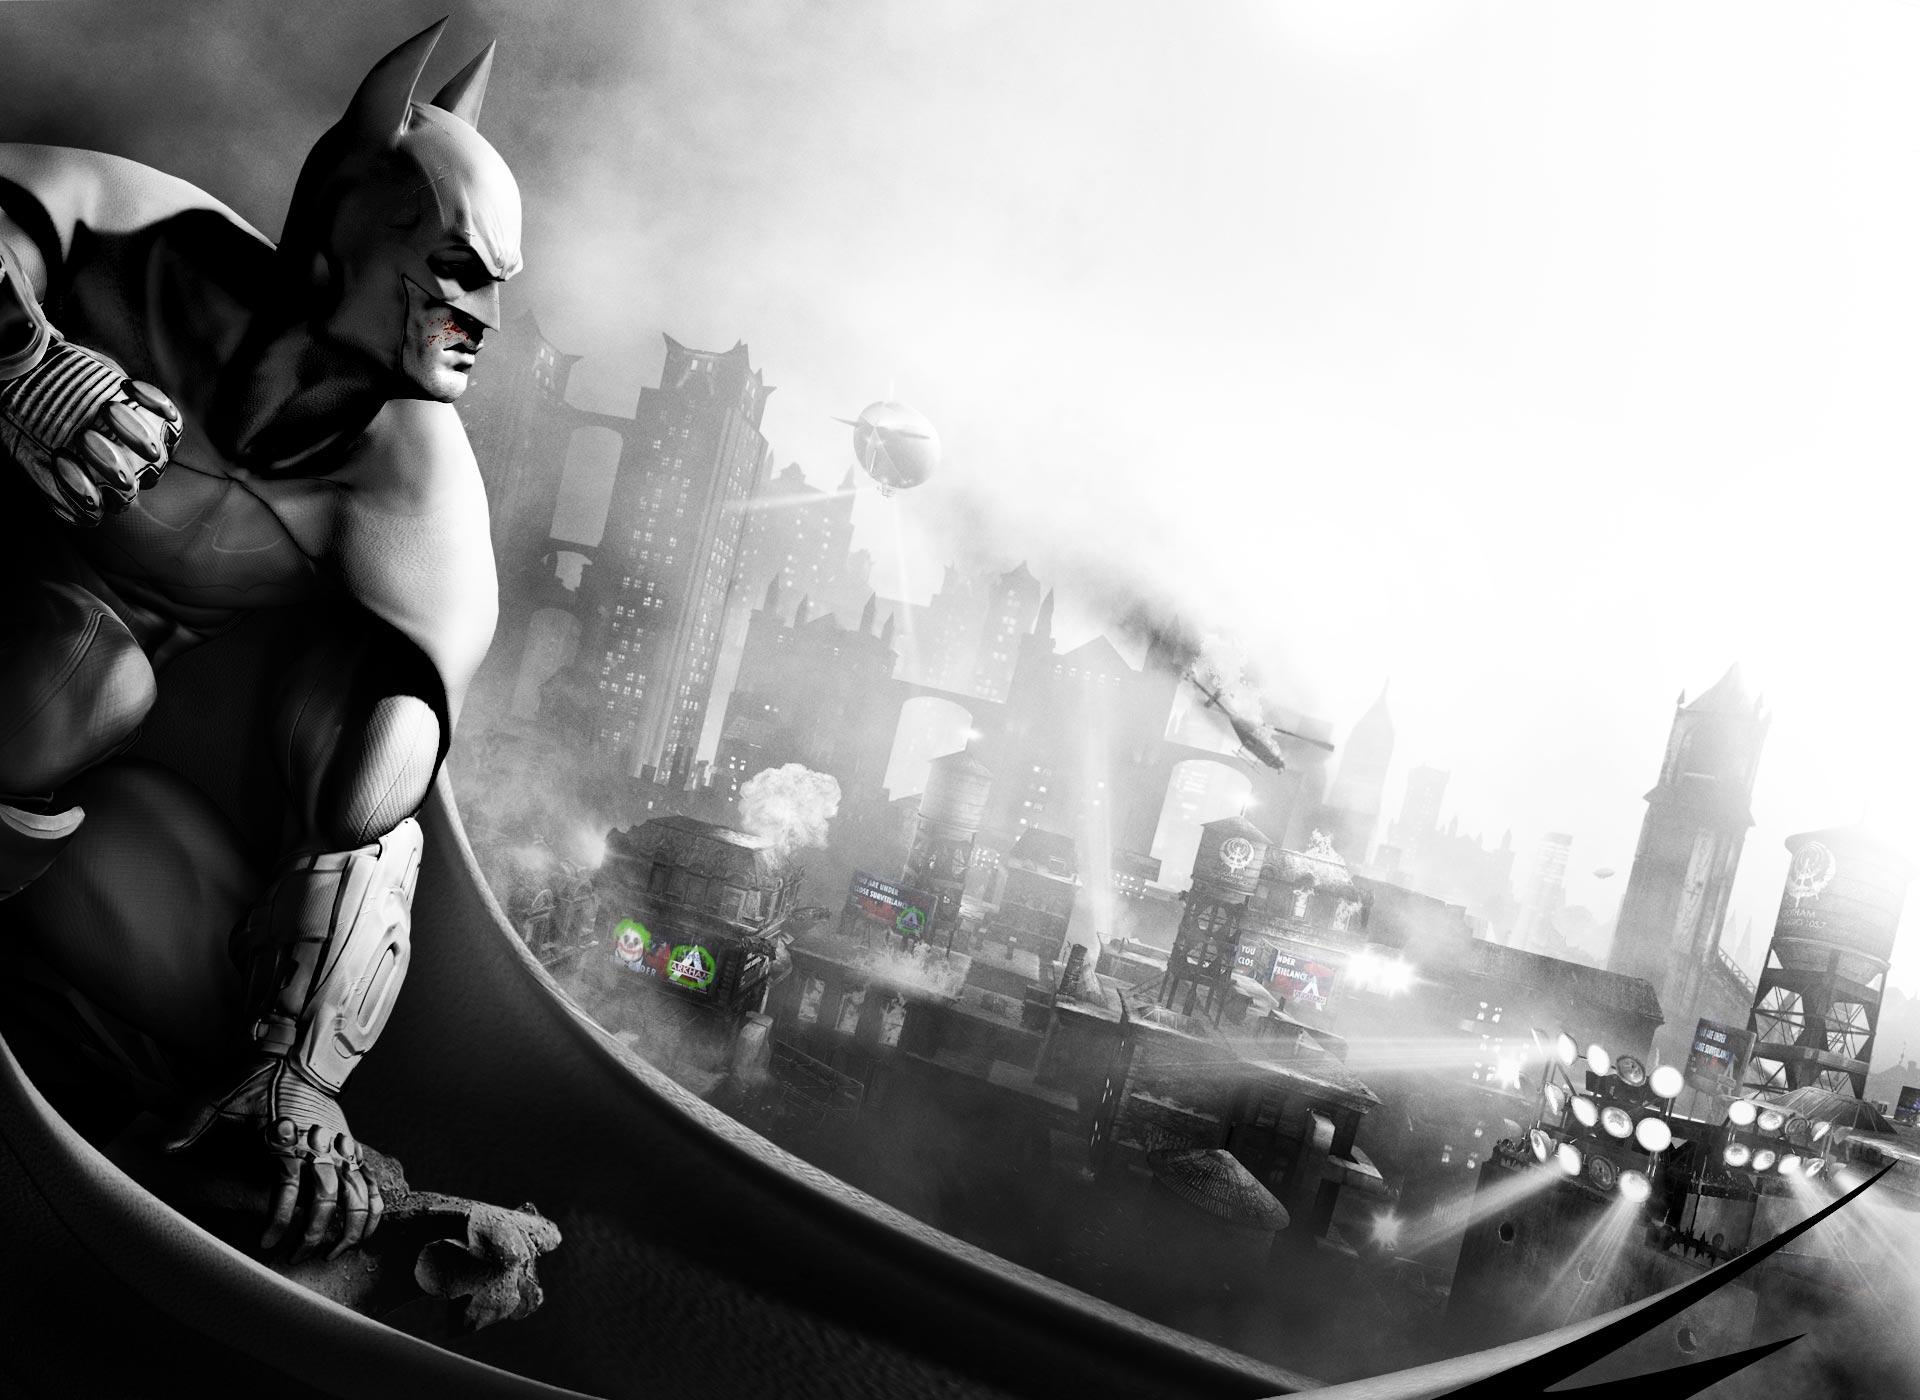 03817456-photo-batman-arkham-city.jpg (1920×1400)